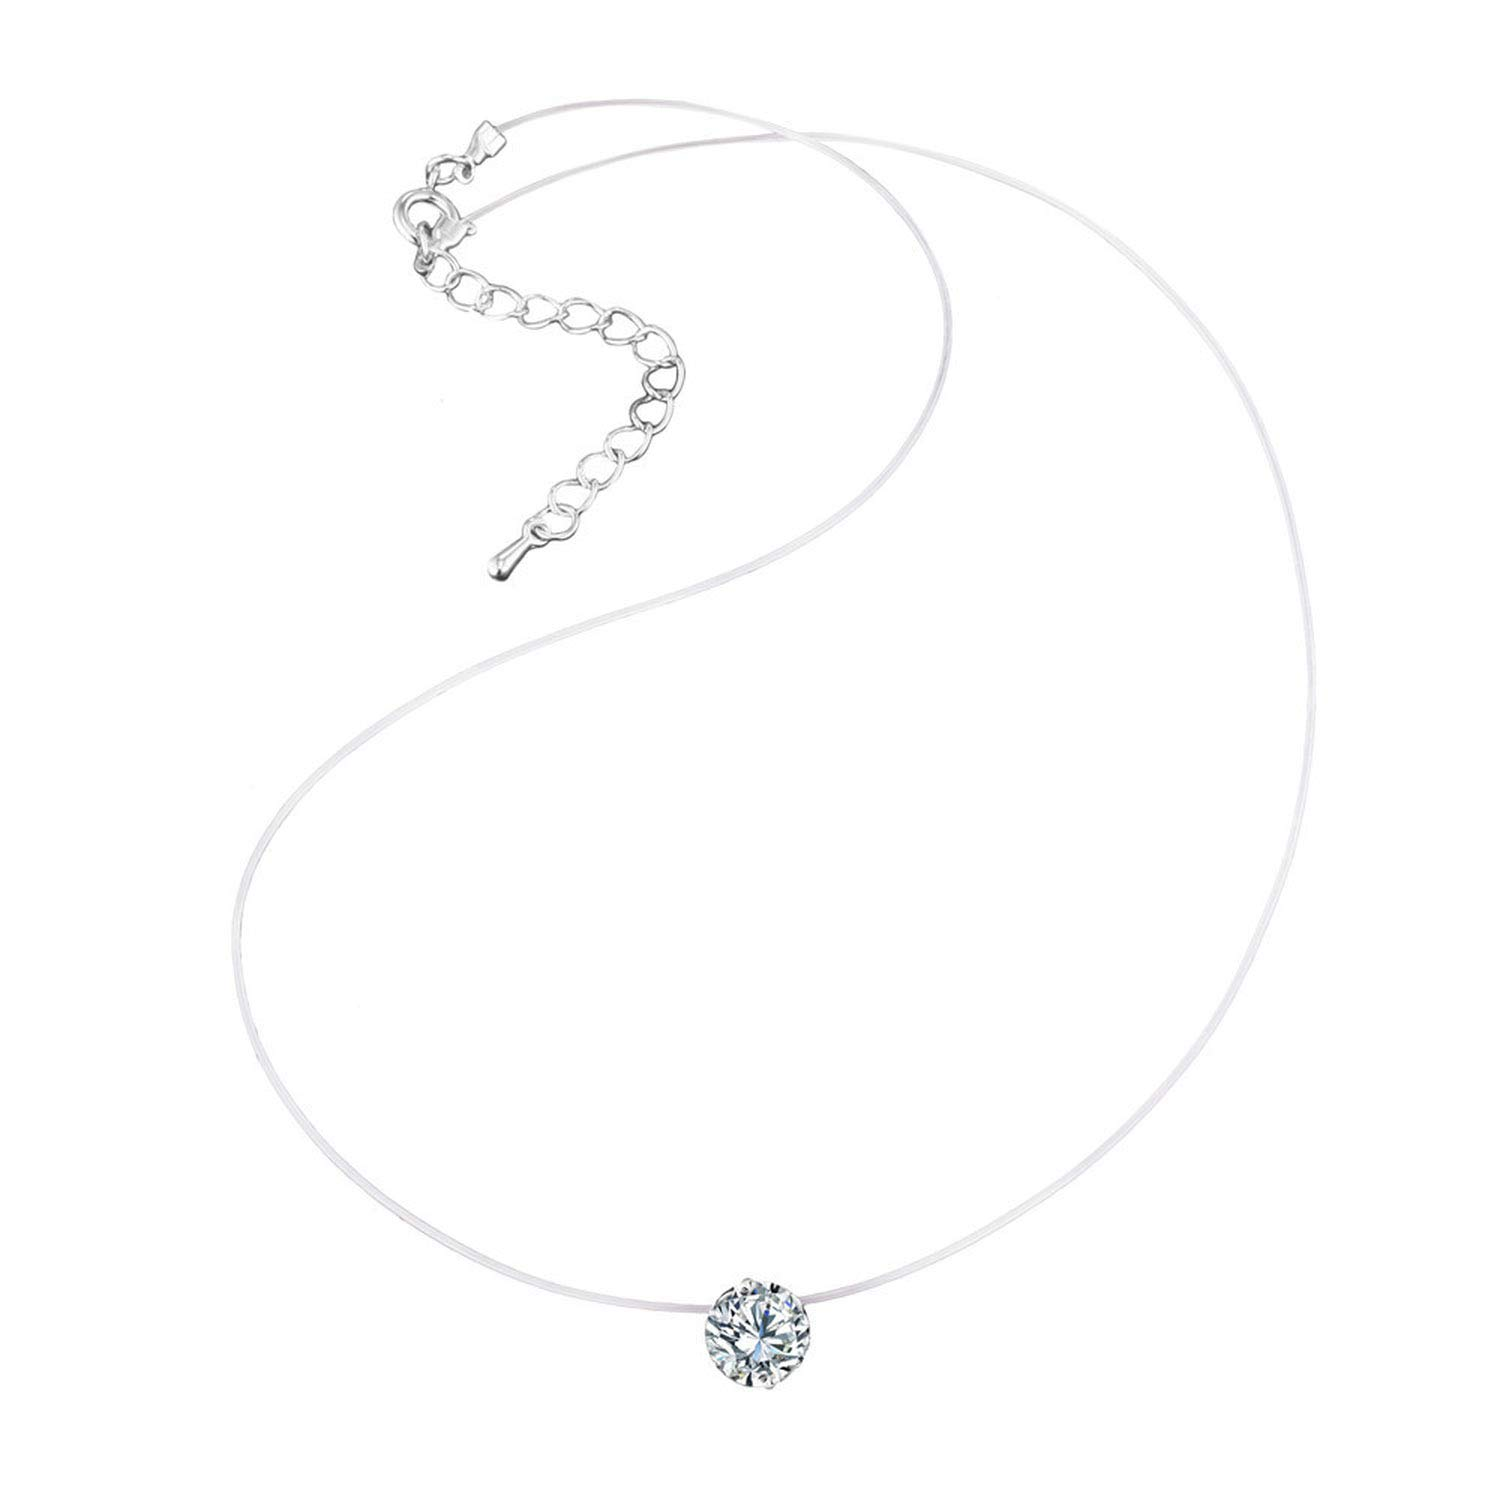 Zircon Stone Transparent Invisible Fishing Line Pendant Necklace for Women Girls Choker Necklace Jewelry Gifts,D